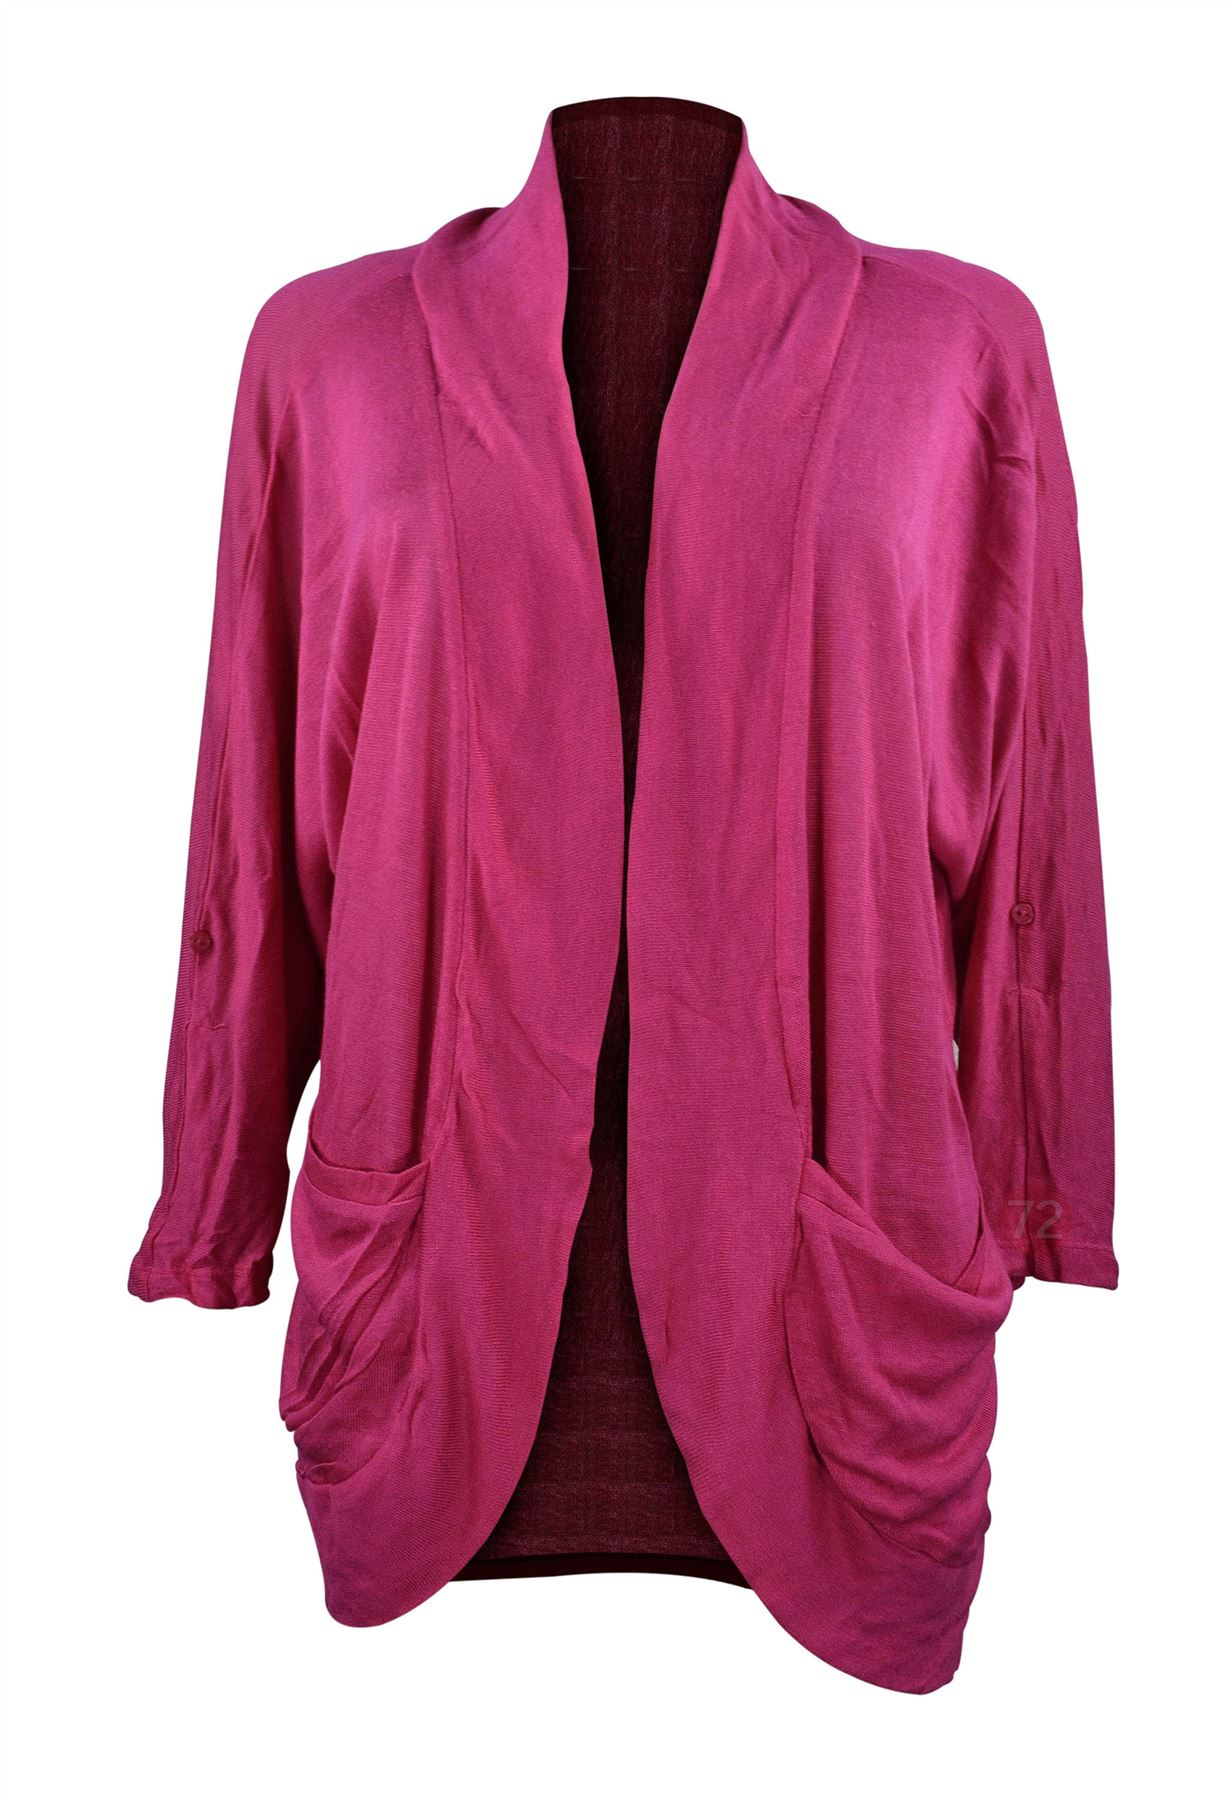 Belle Donne - Women's Hacci sleeve , Collar Open Front Plus Size Cardigan - Magenta, XL